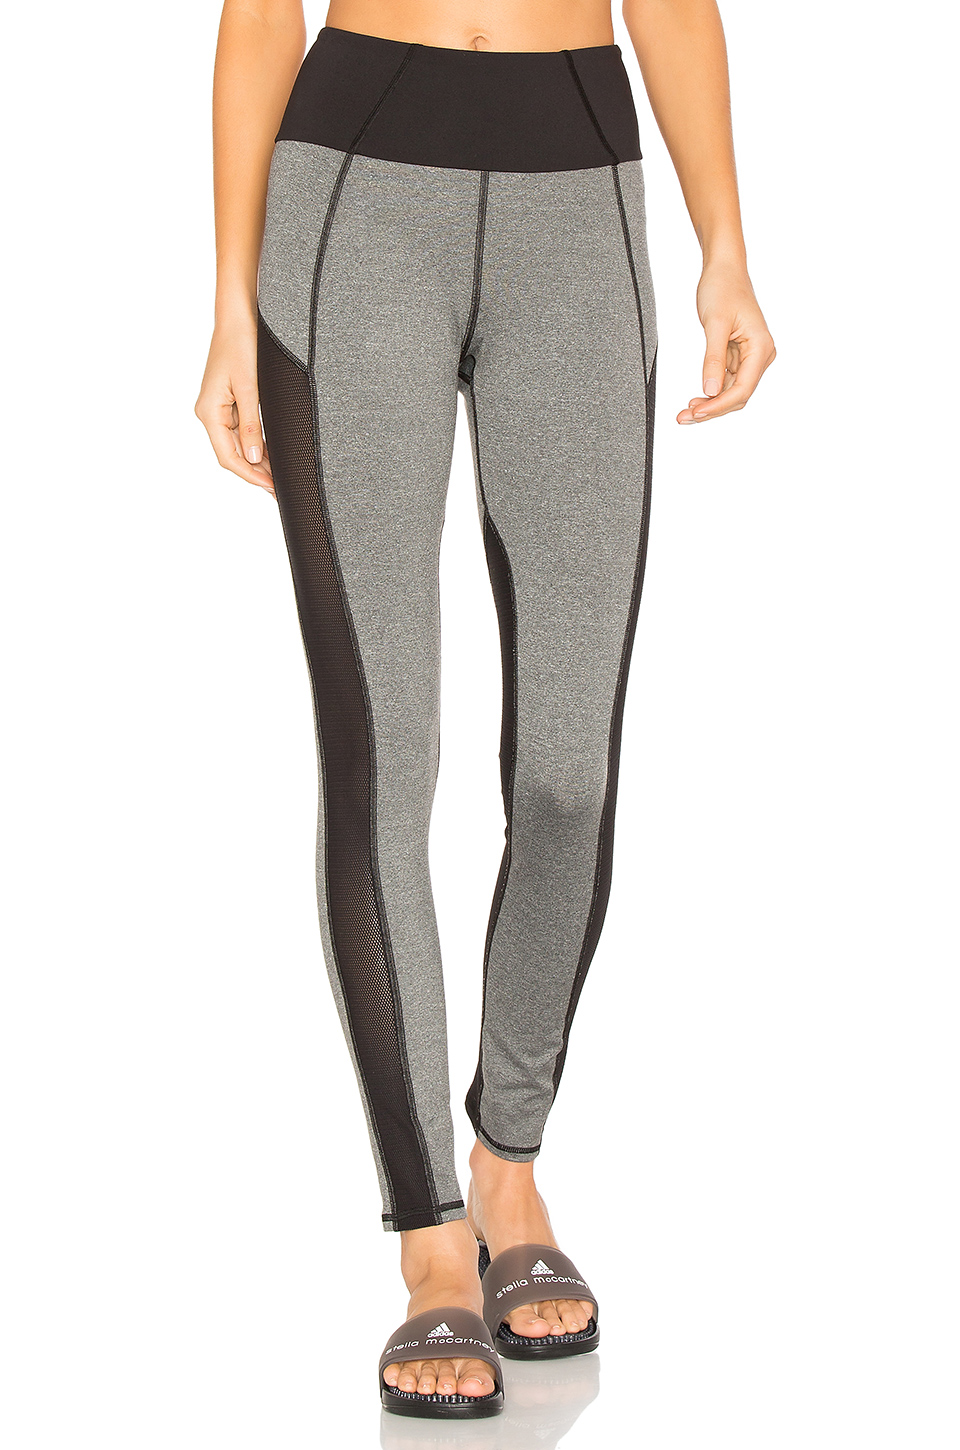 MICHI Summit High Waisted Legging in Heather Grey & Black